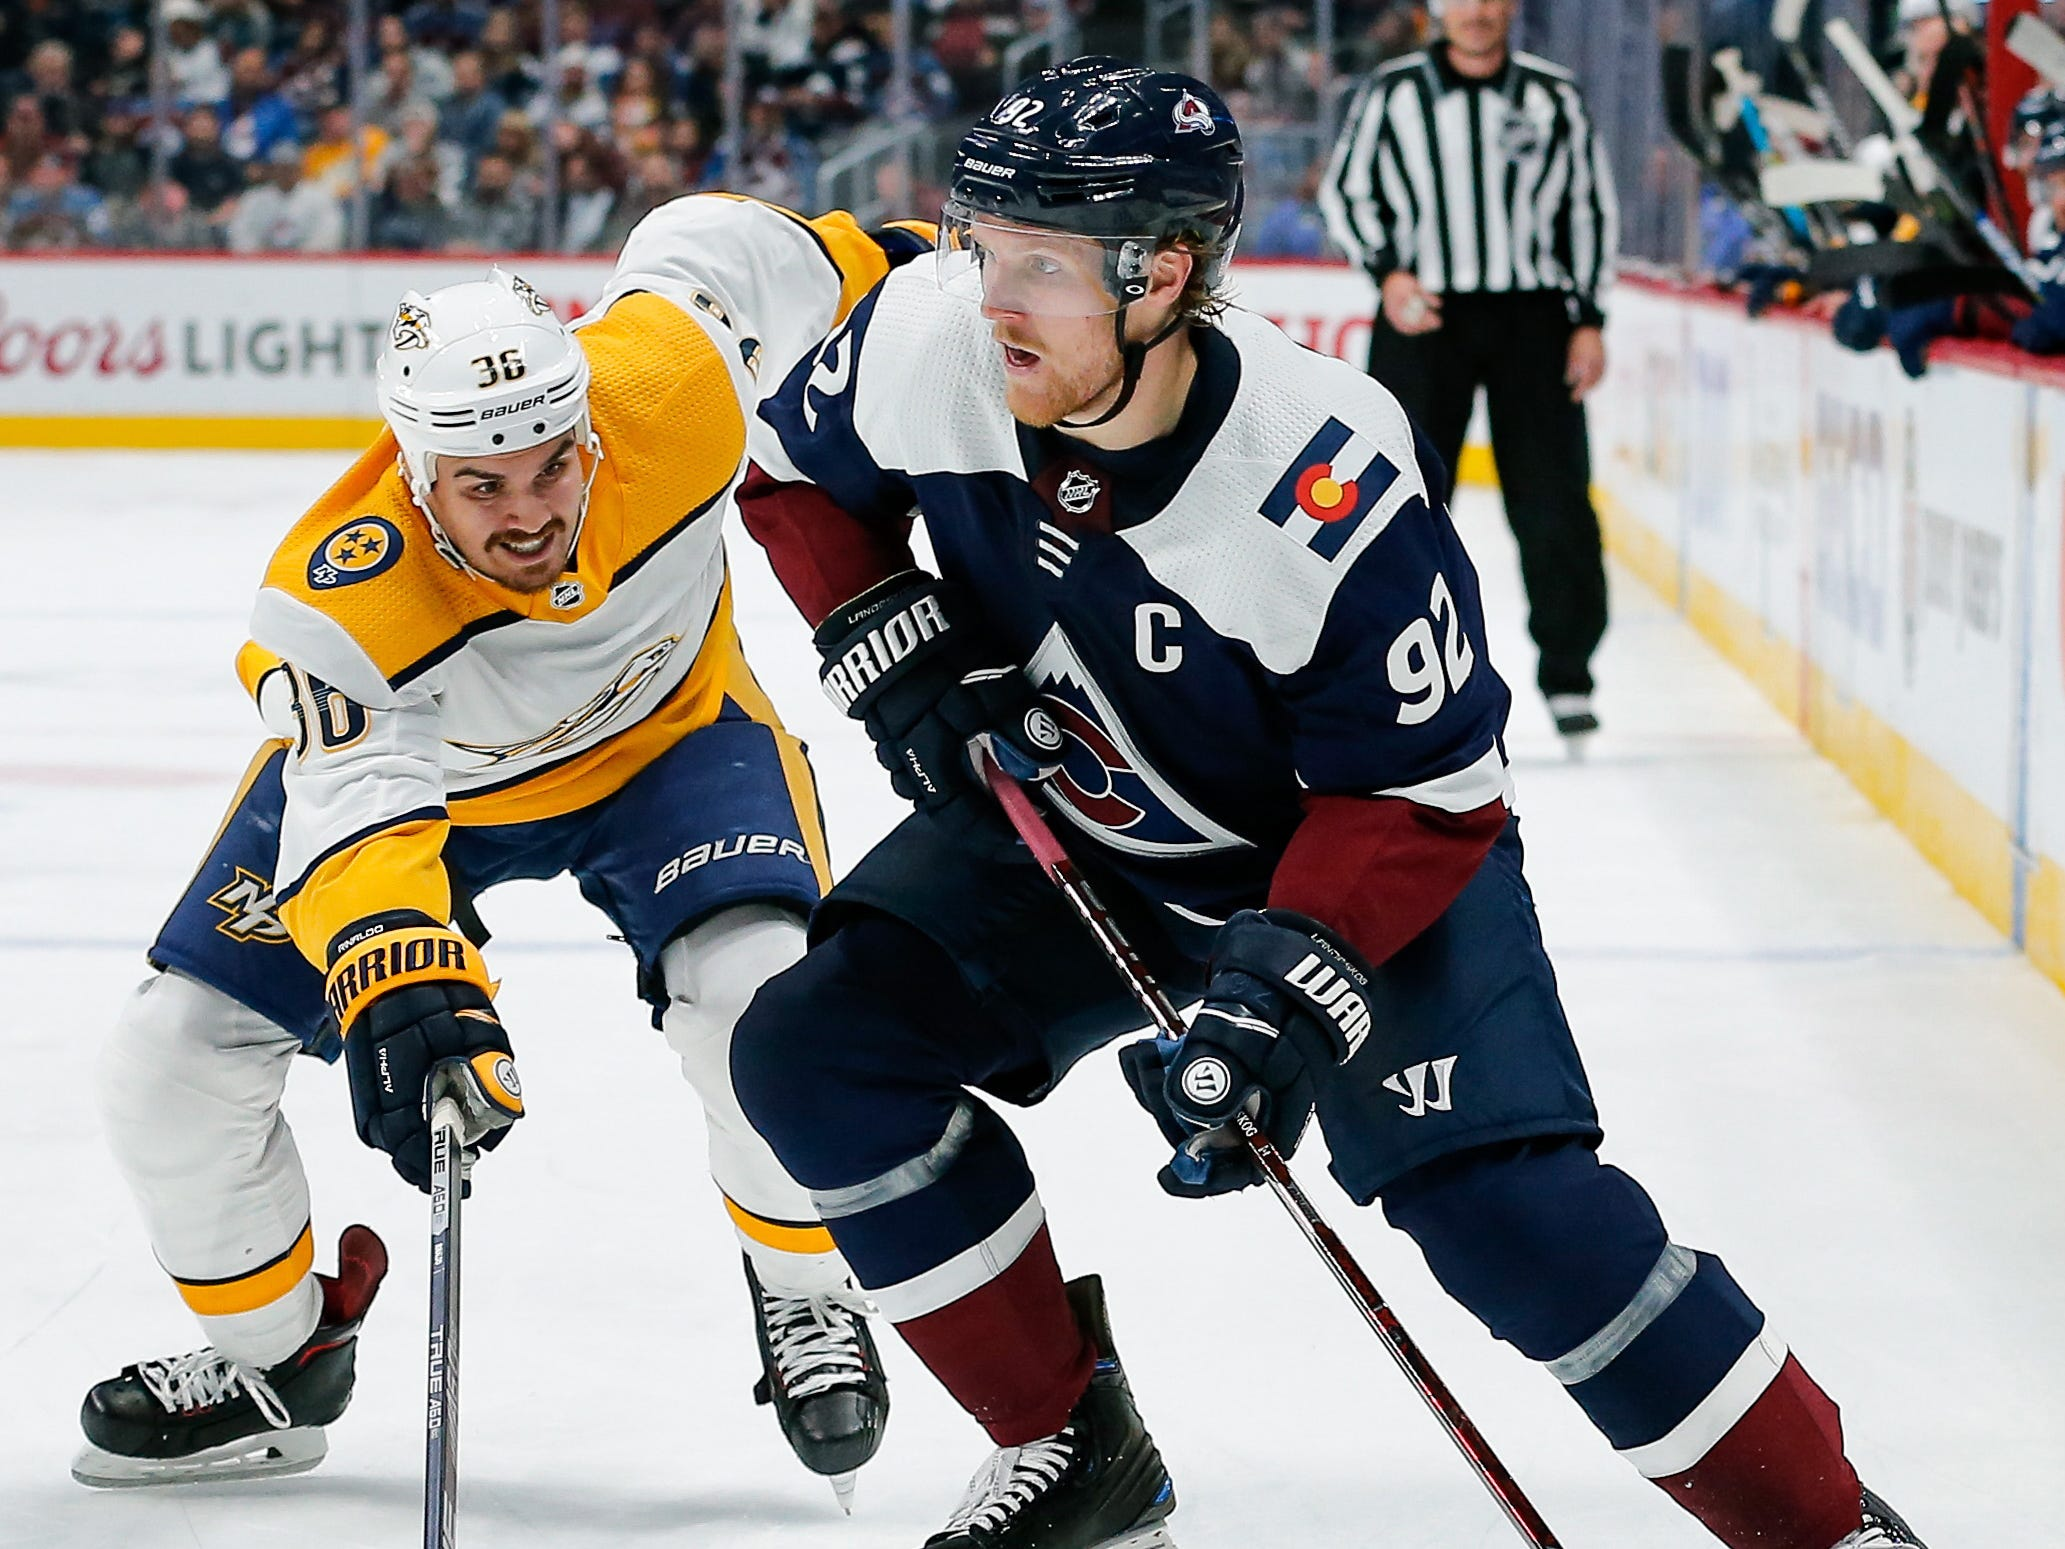 Nashville Predators left wing Zac Rinaldo (36) defends against Colorado Avalanche left wing Gabriel Landeskog (92) in the second period at the Pepsi Center.